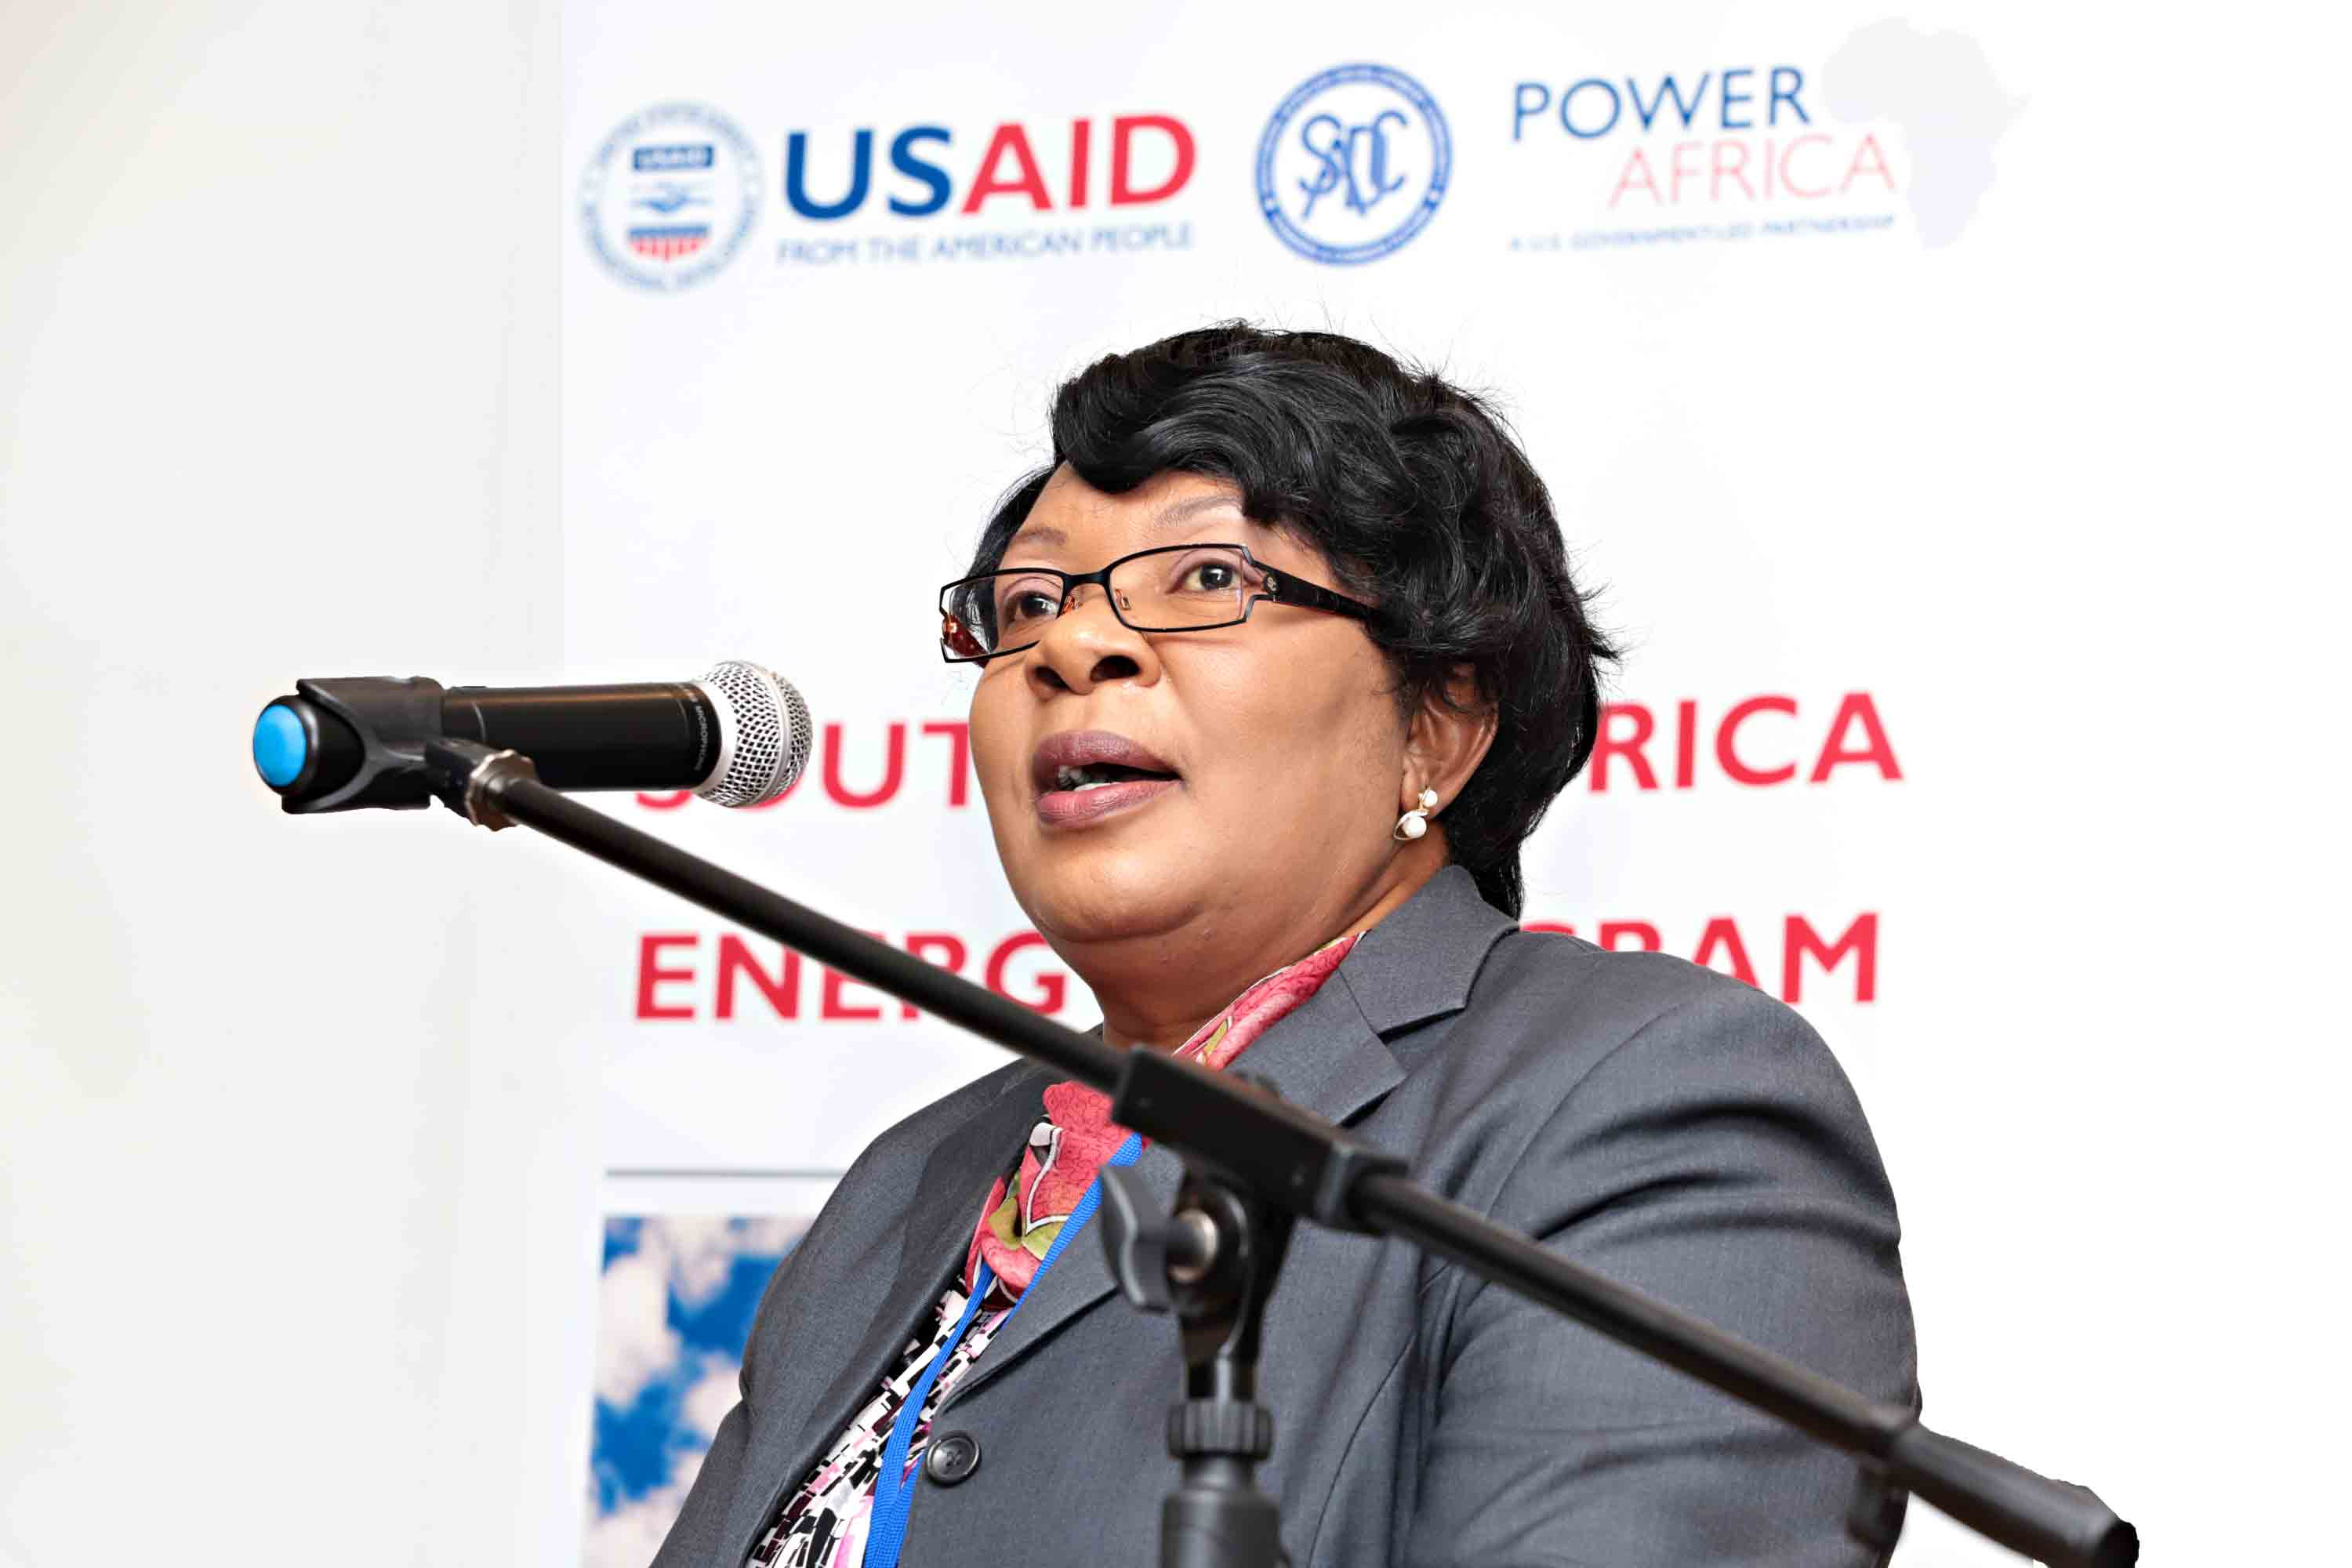 Chimwemwe-Gloria-Banda-Chief-Director--Energy-USAID-Malawi-Lilongwe-Power-Africa-Journalistic-Photographer-Pretoria